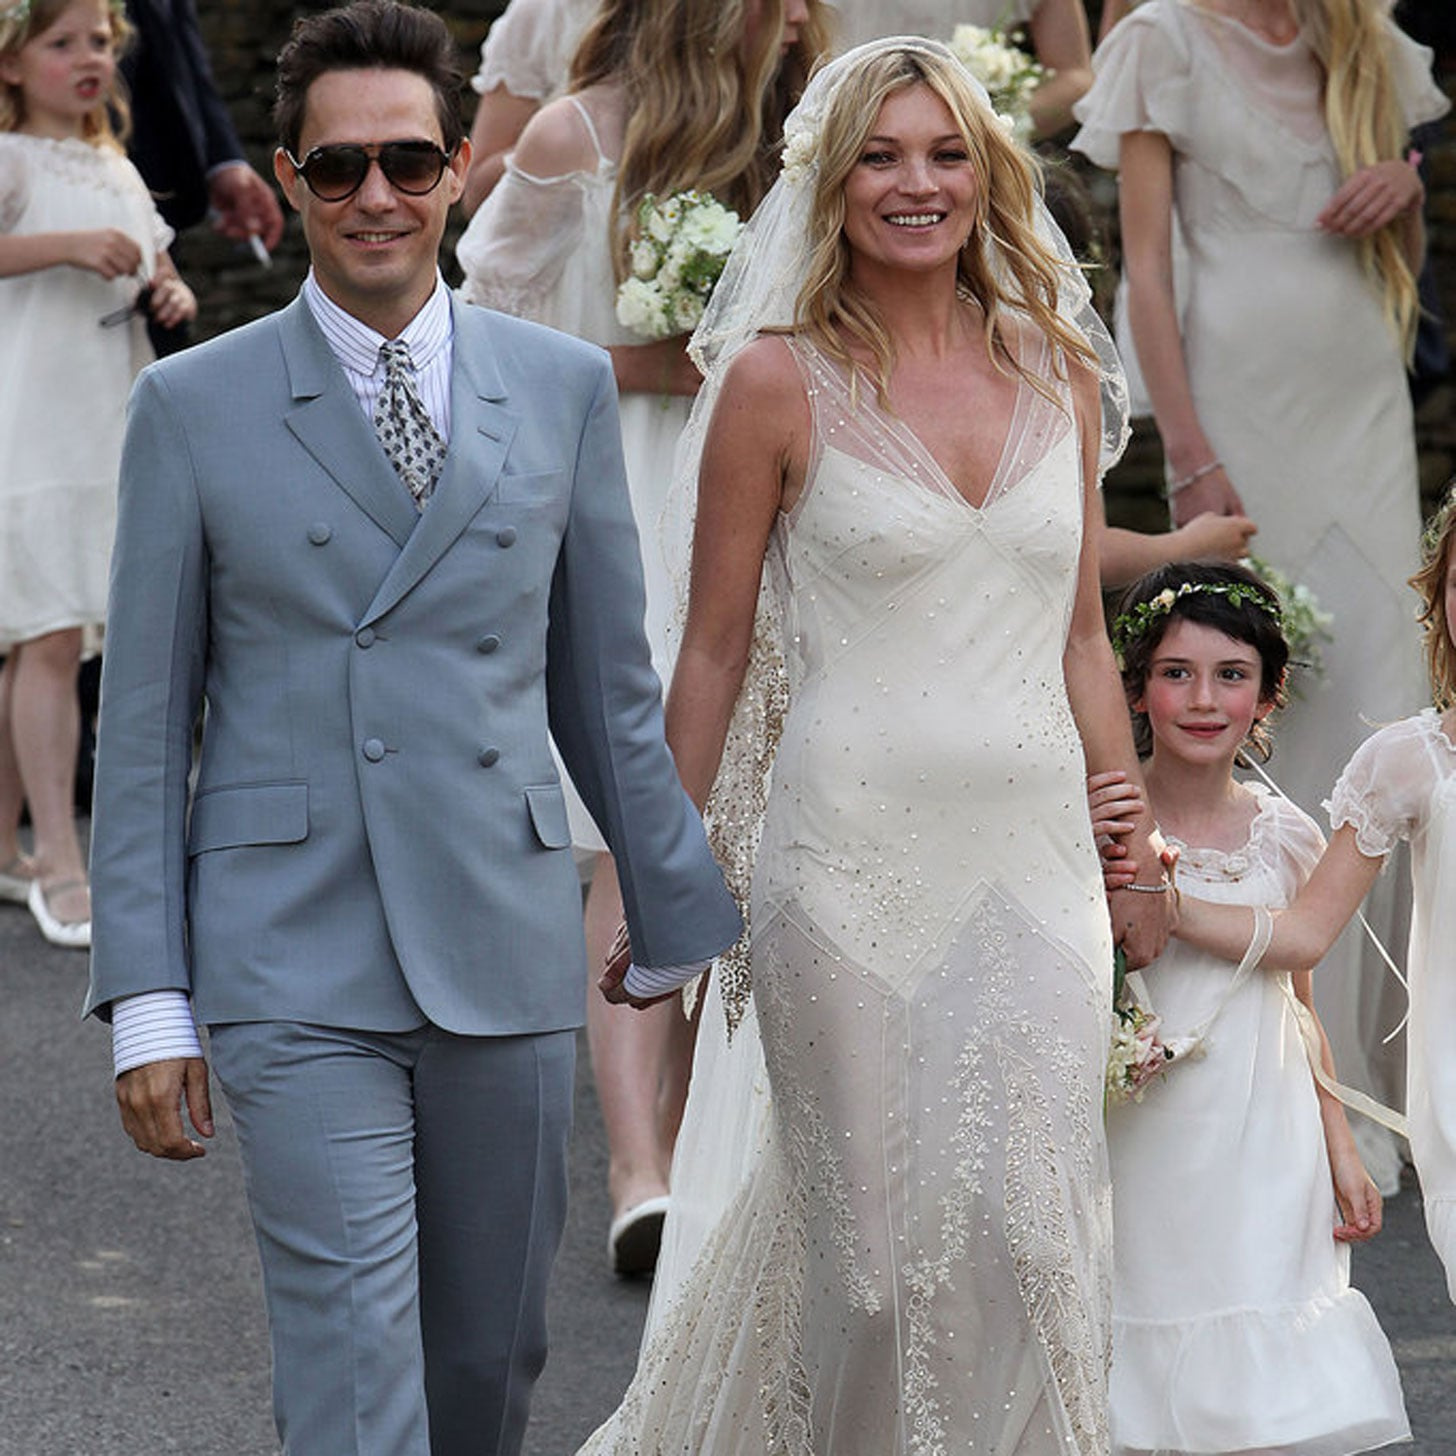 Celebrity wedding dresses popsugar au celebrity wedding dresses junglespirit Gallery